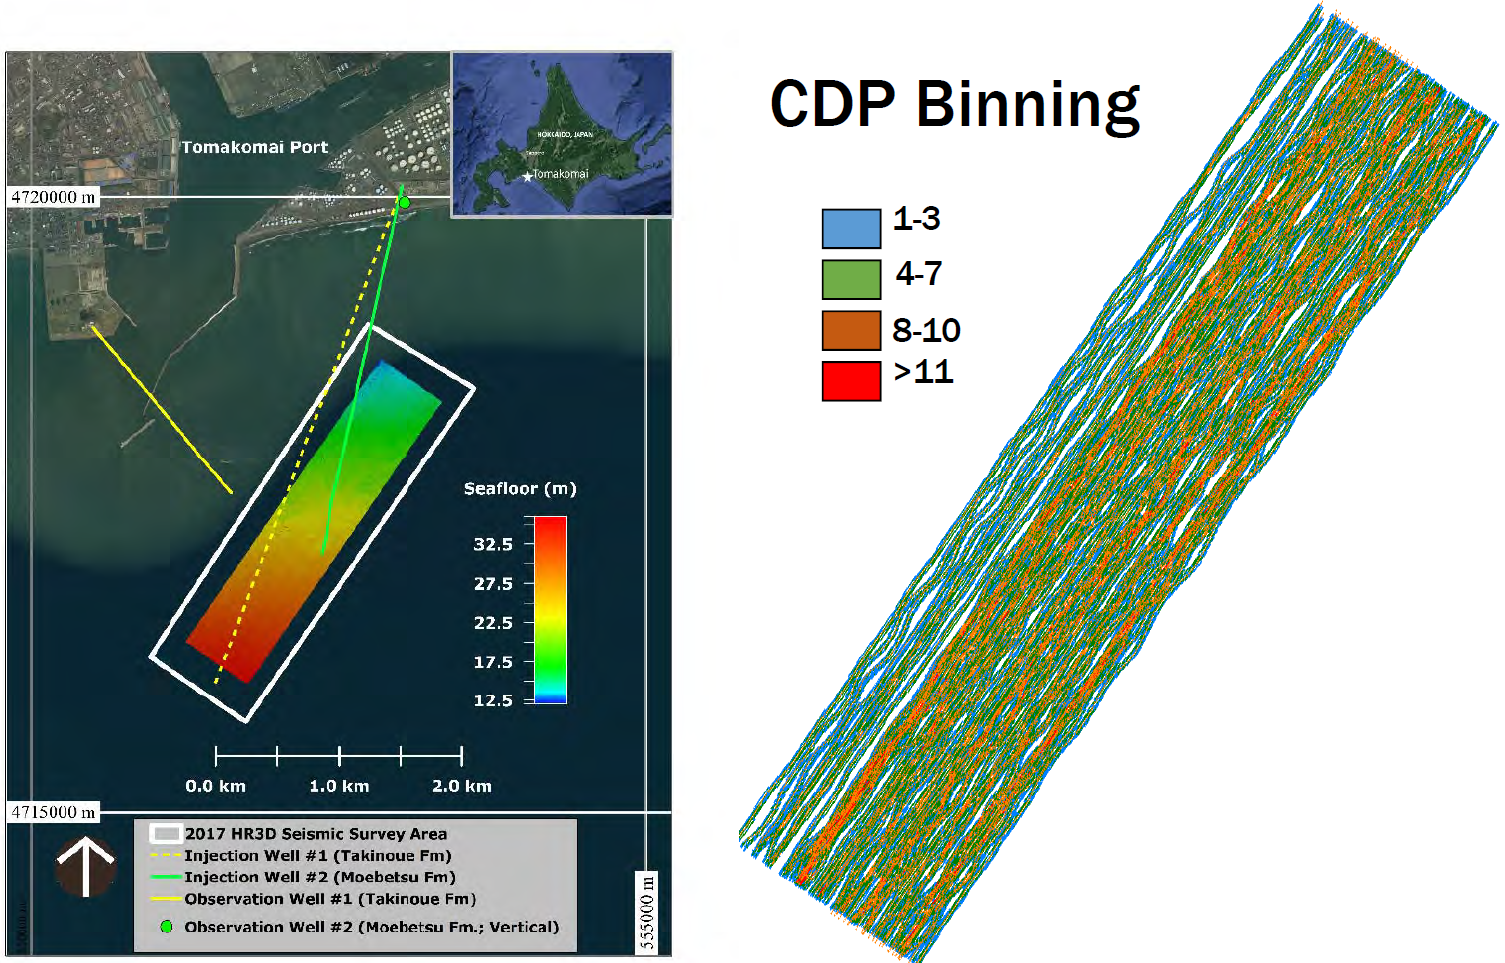 CDP binning of HR3D Seismic Data collected offshore of Tomakomai, Japan.